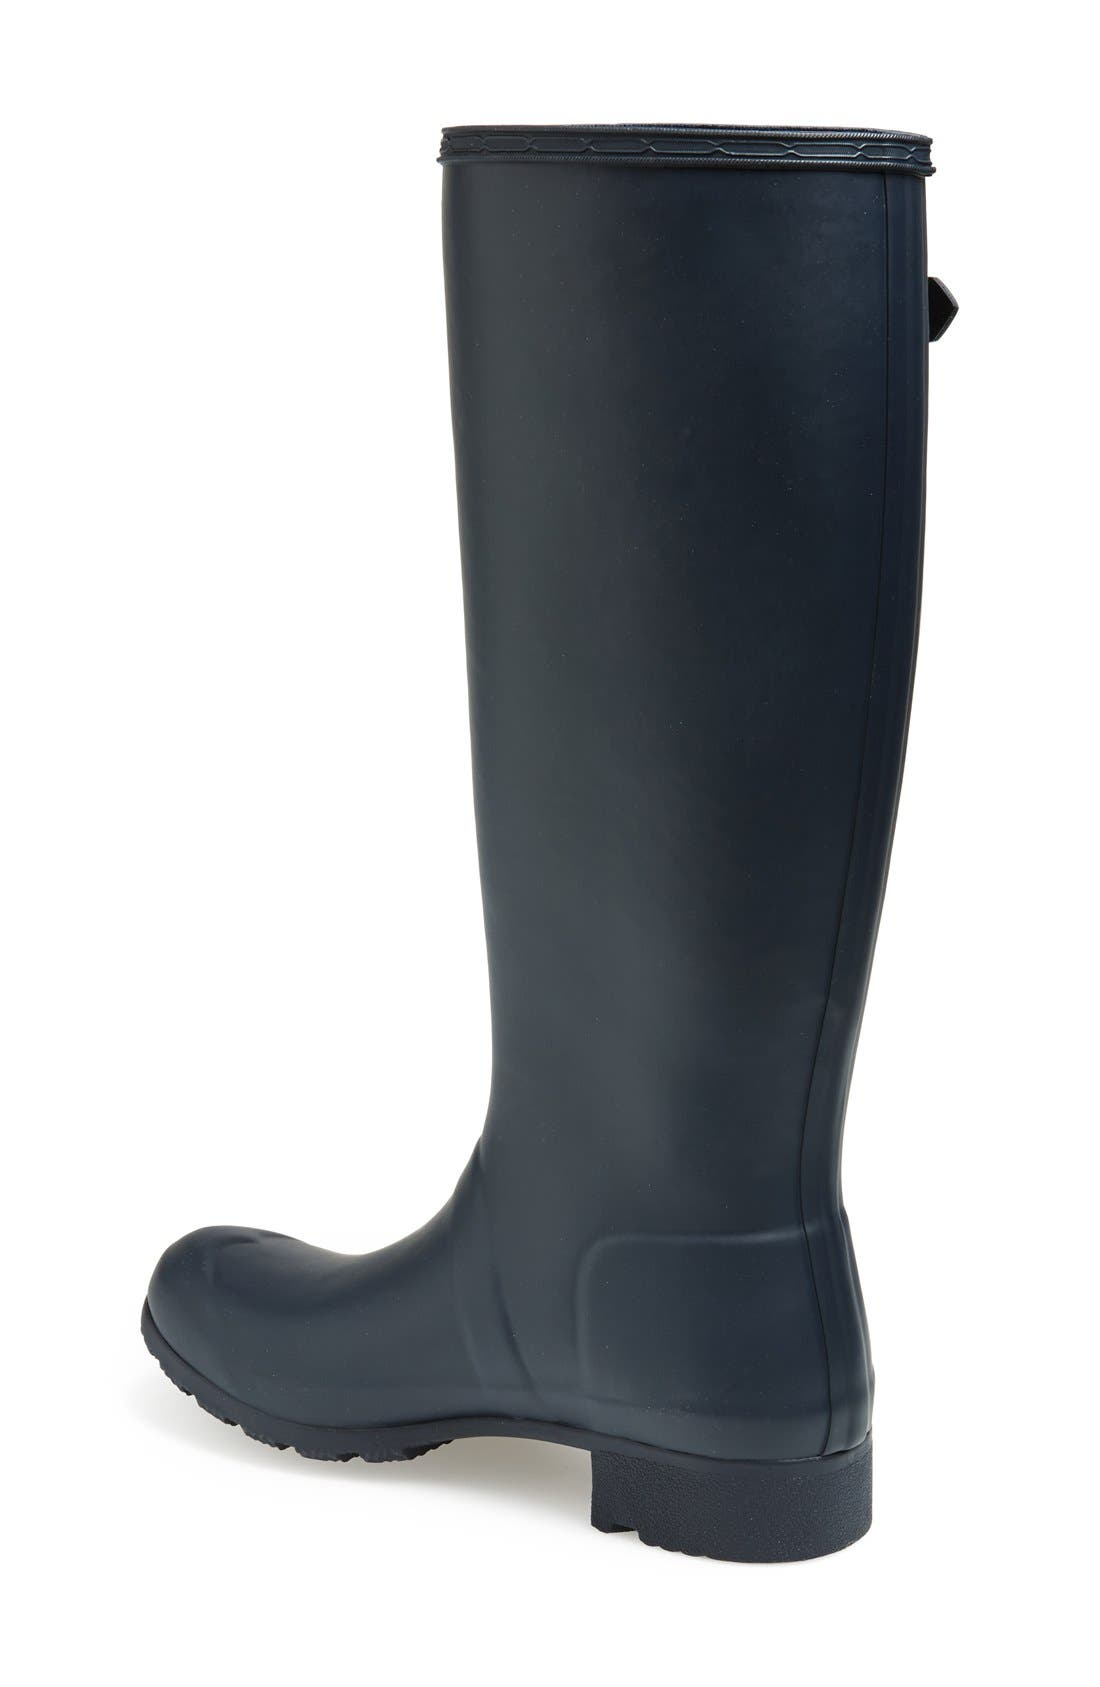 'Tour' Packable Rain Boot,                             Alternate thumbnail 90, color,